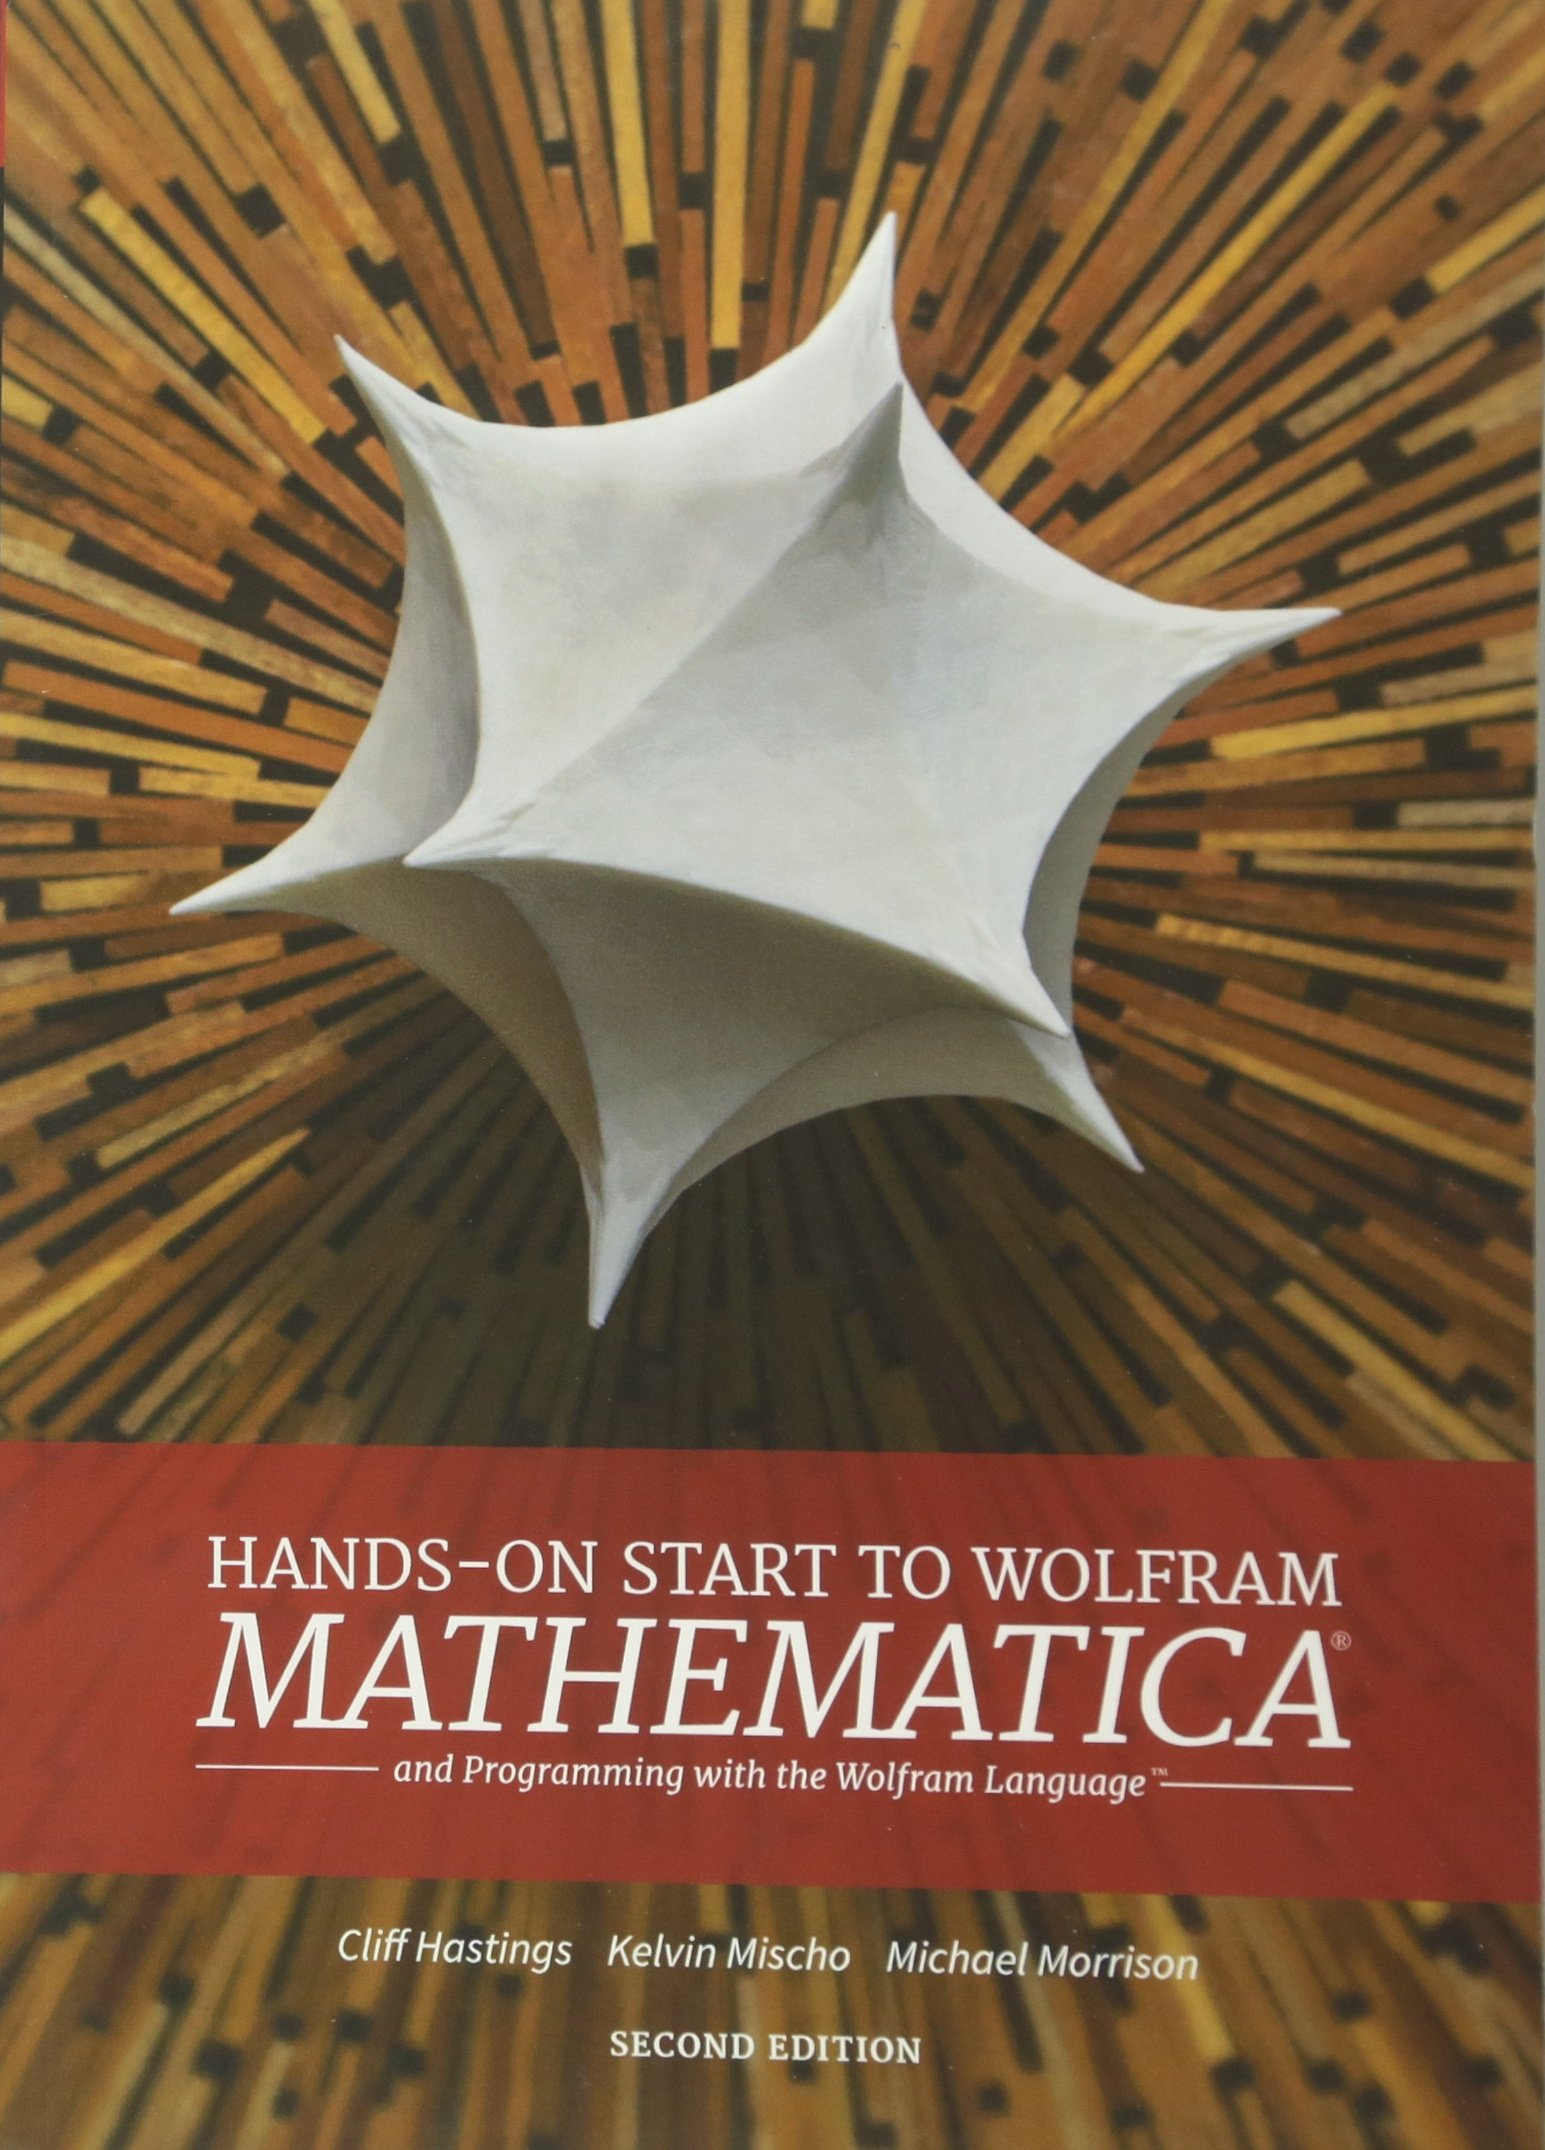 Hands-On Start to Wolfram Mathematica: And